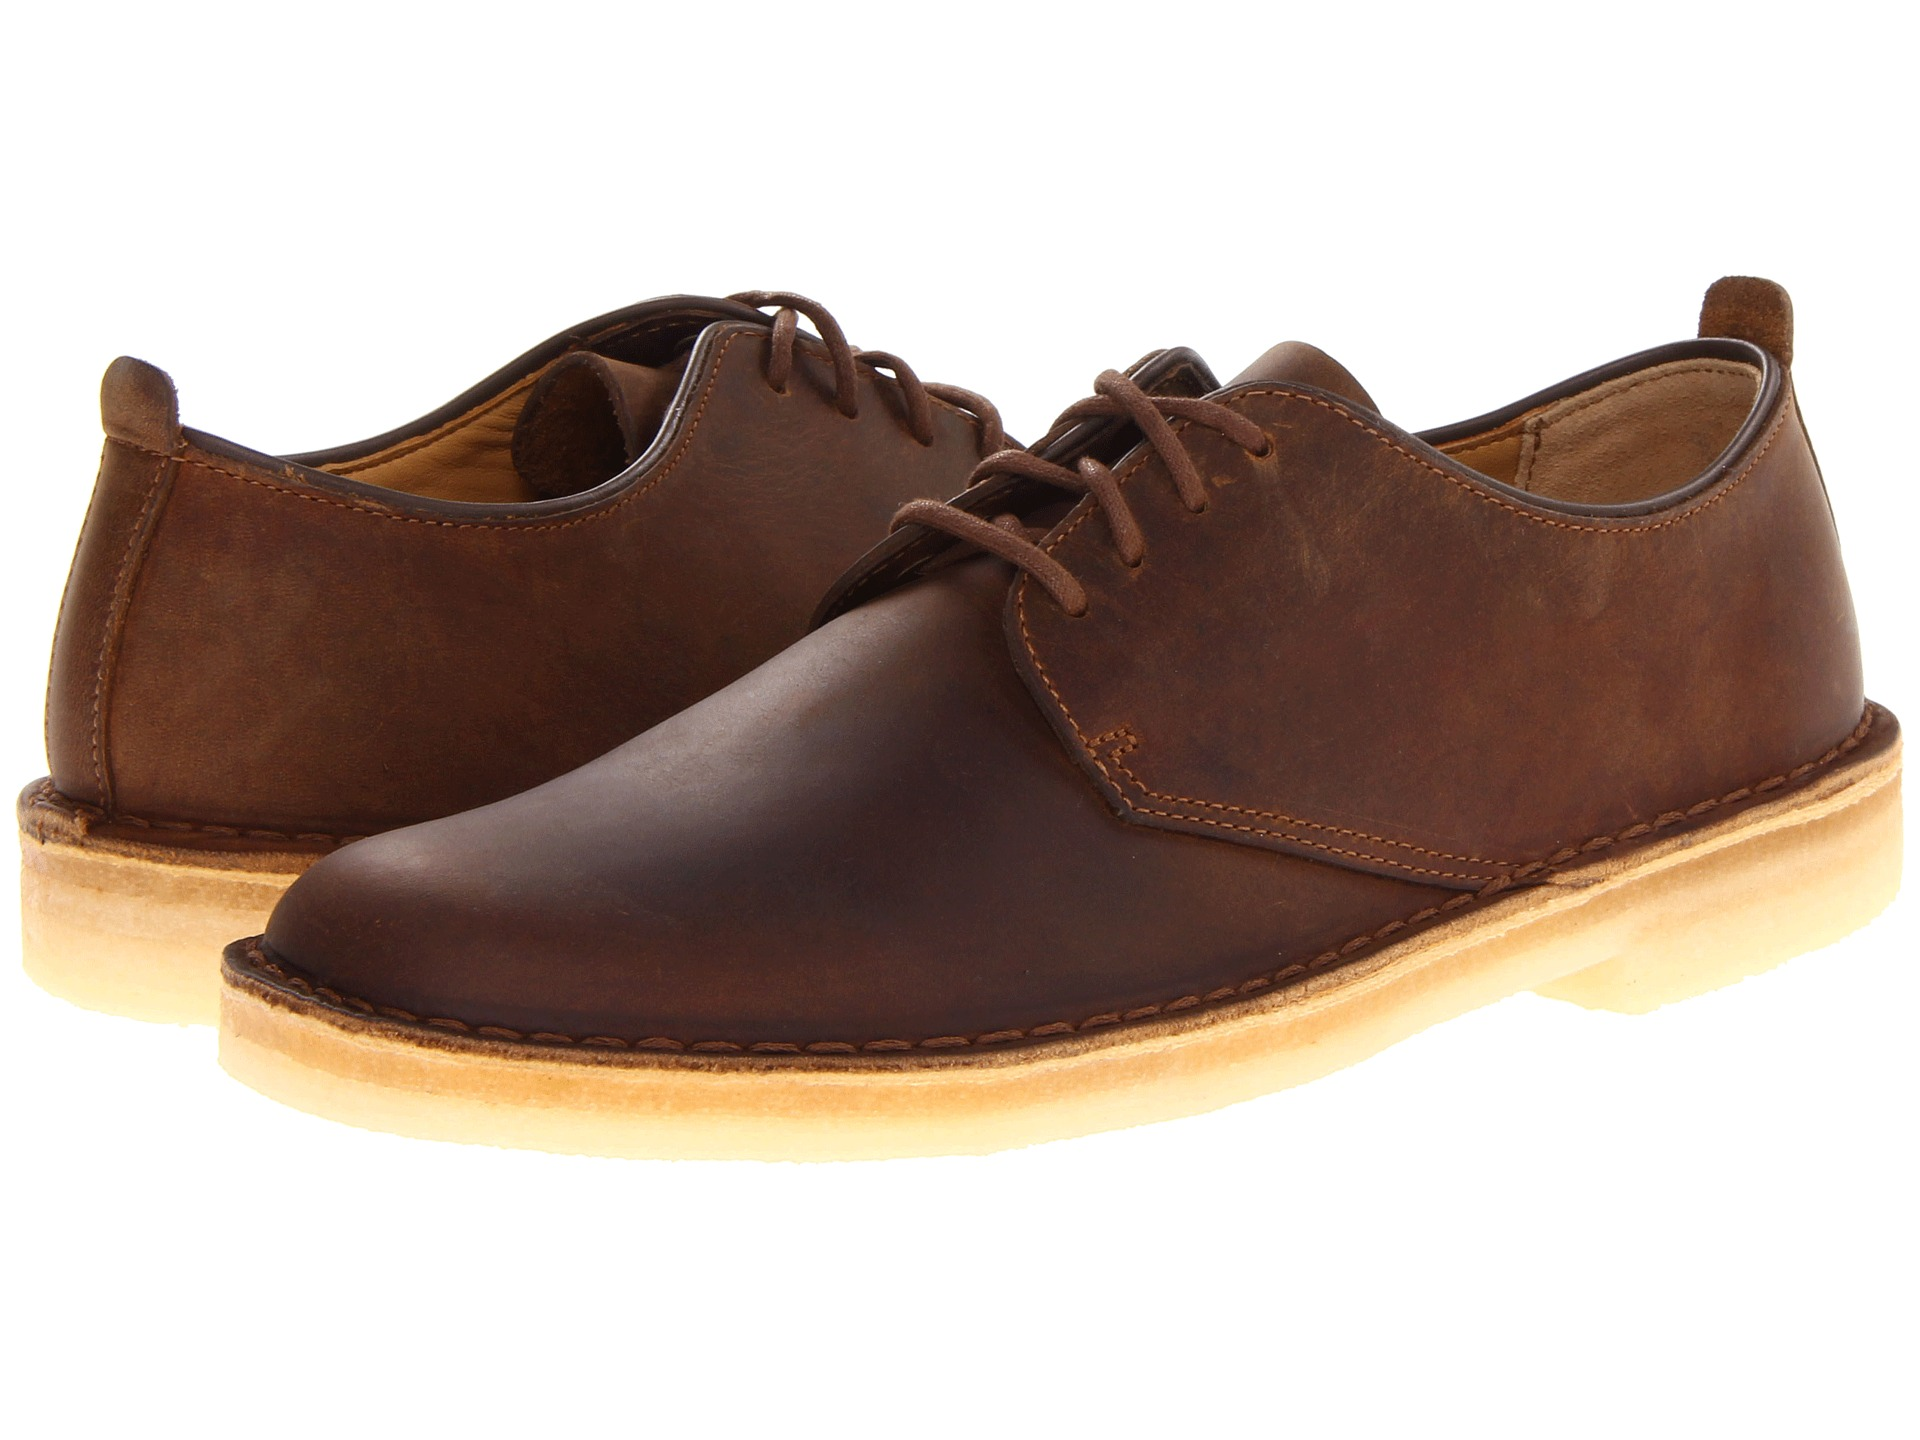 Clarks Oxford Style Shoes